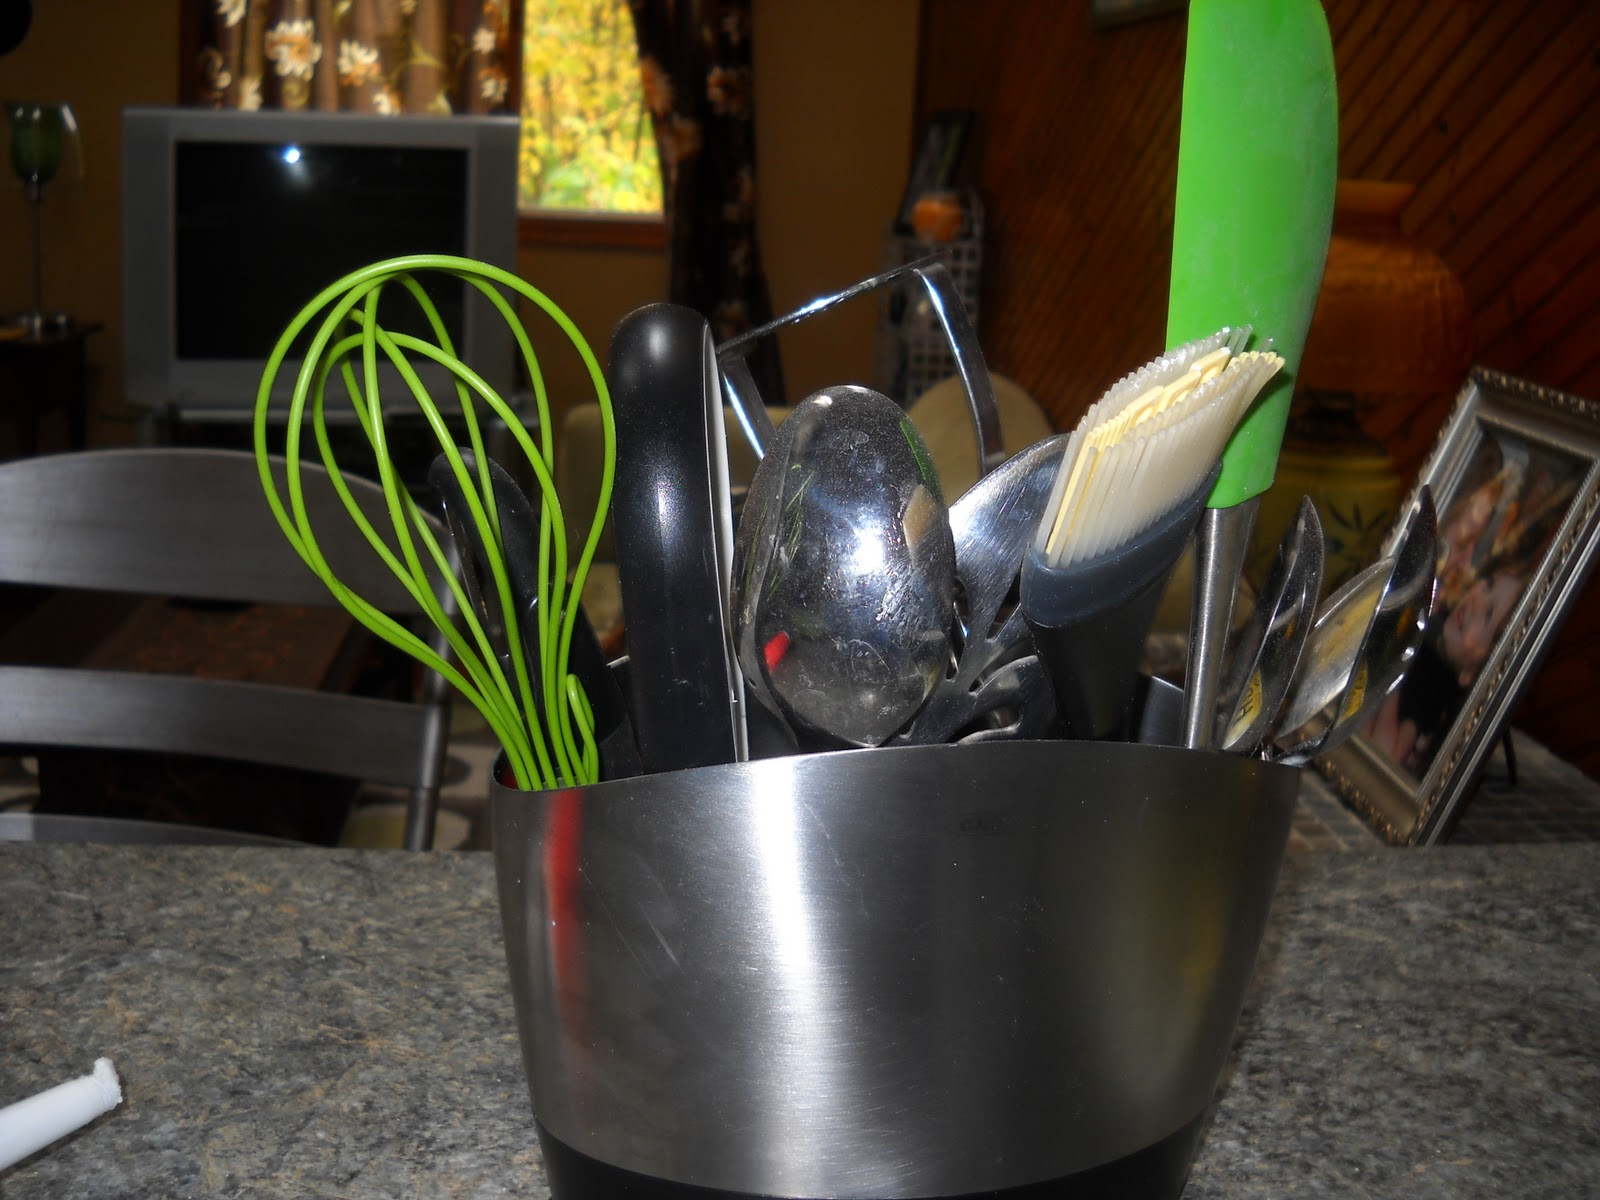 found some green utensils at Amazon, and got them on a Buy Three Get